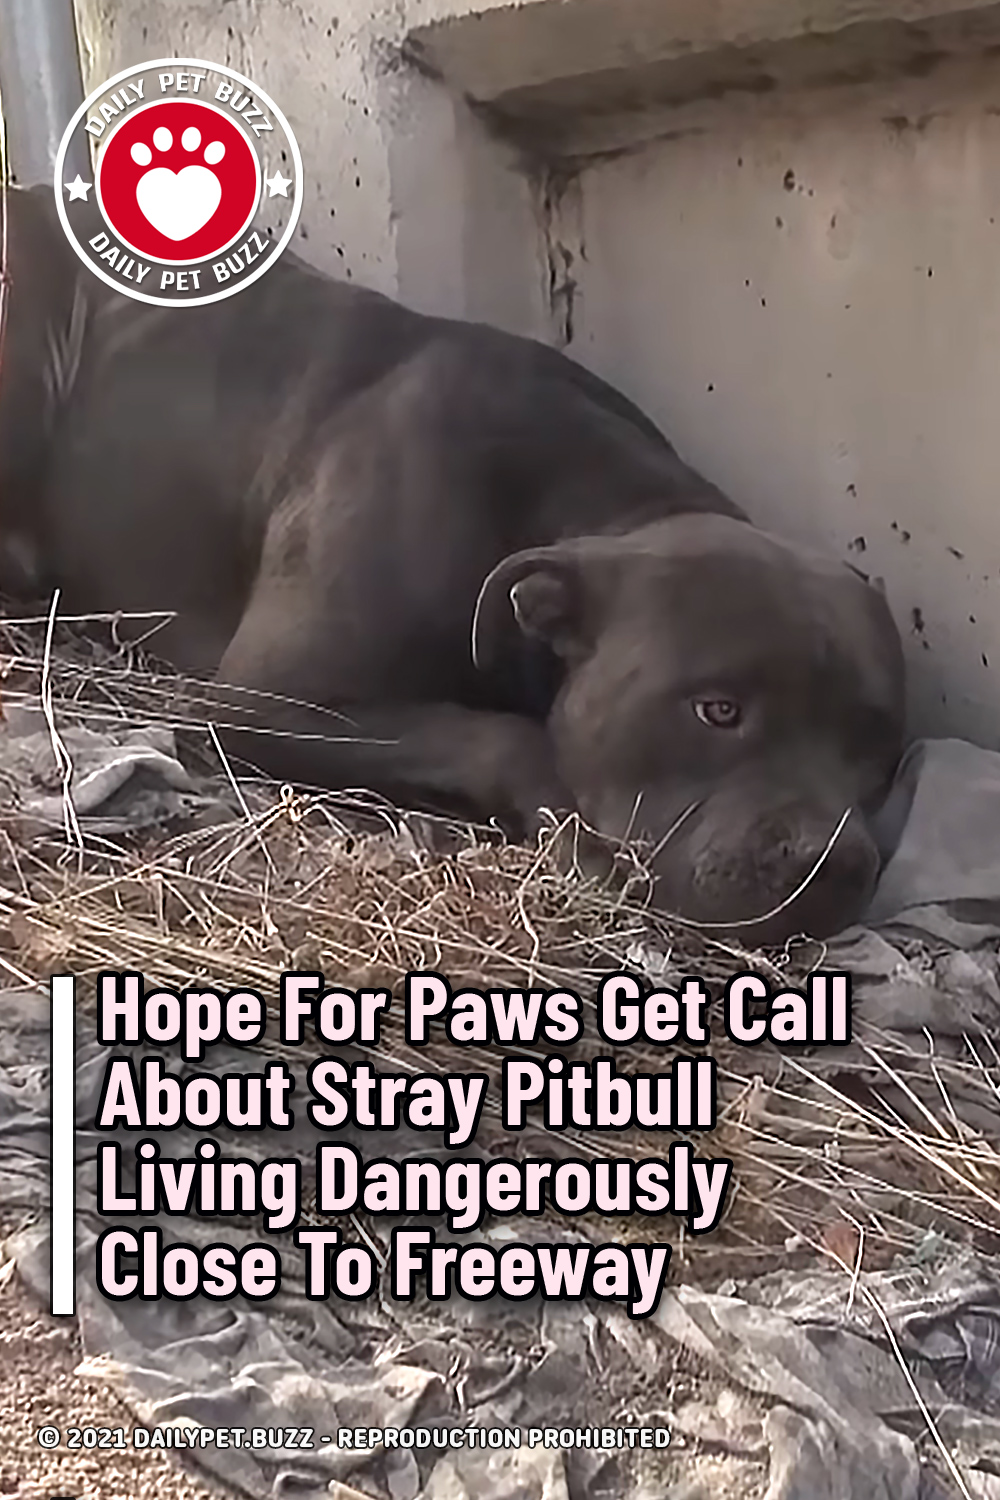 Hope For Paws Get Call About Stray Pitbull Living Dangerously Close To Freeway